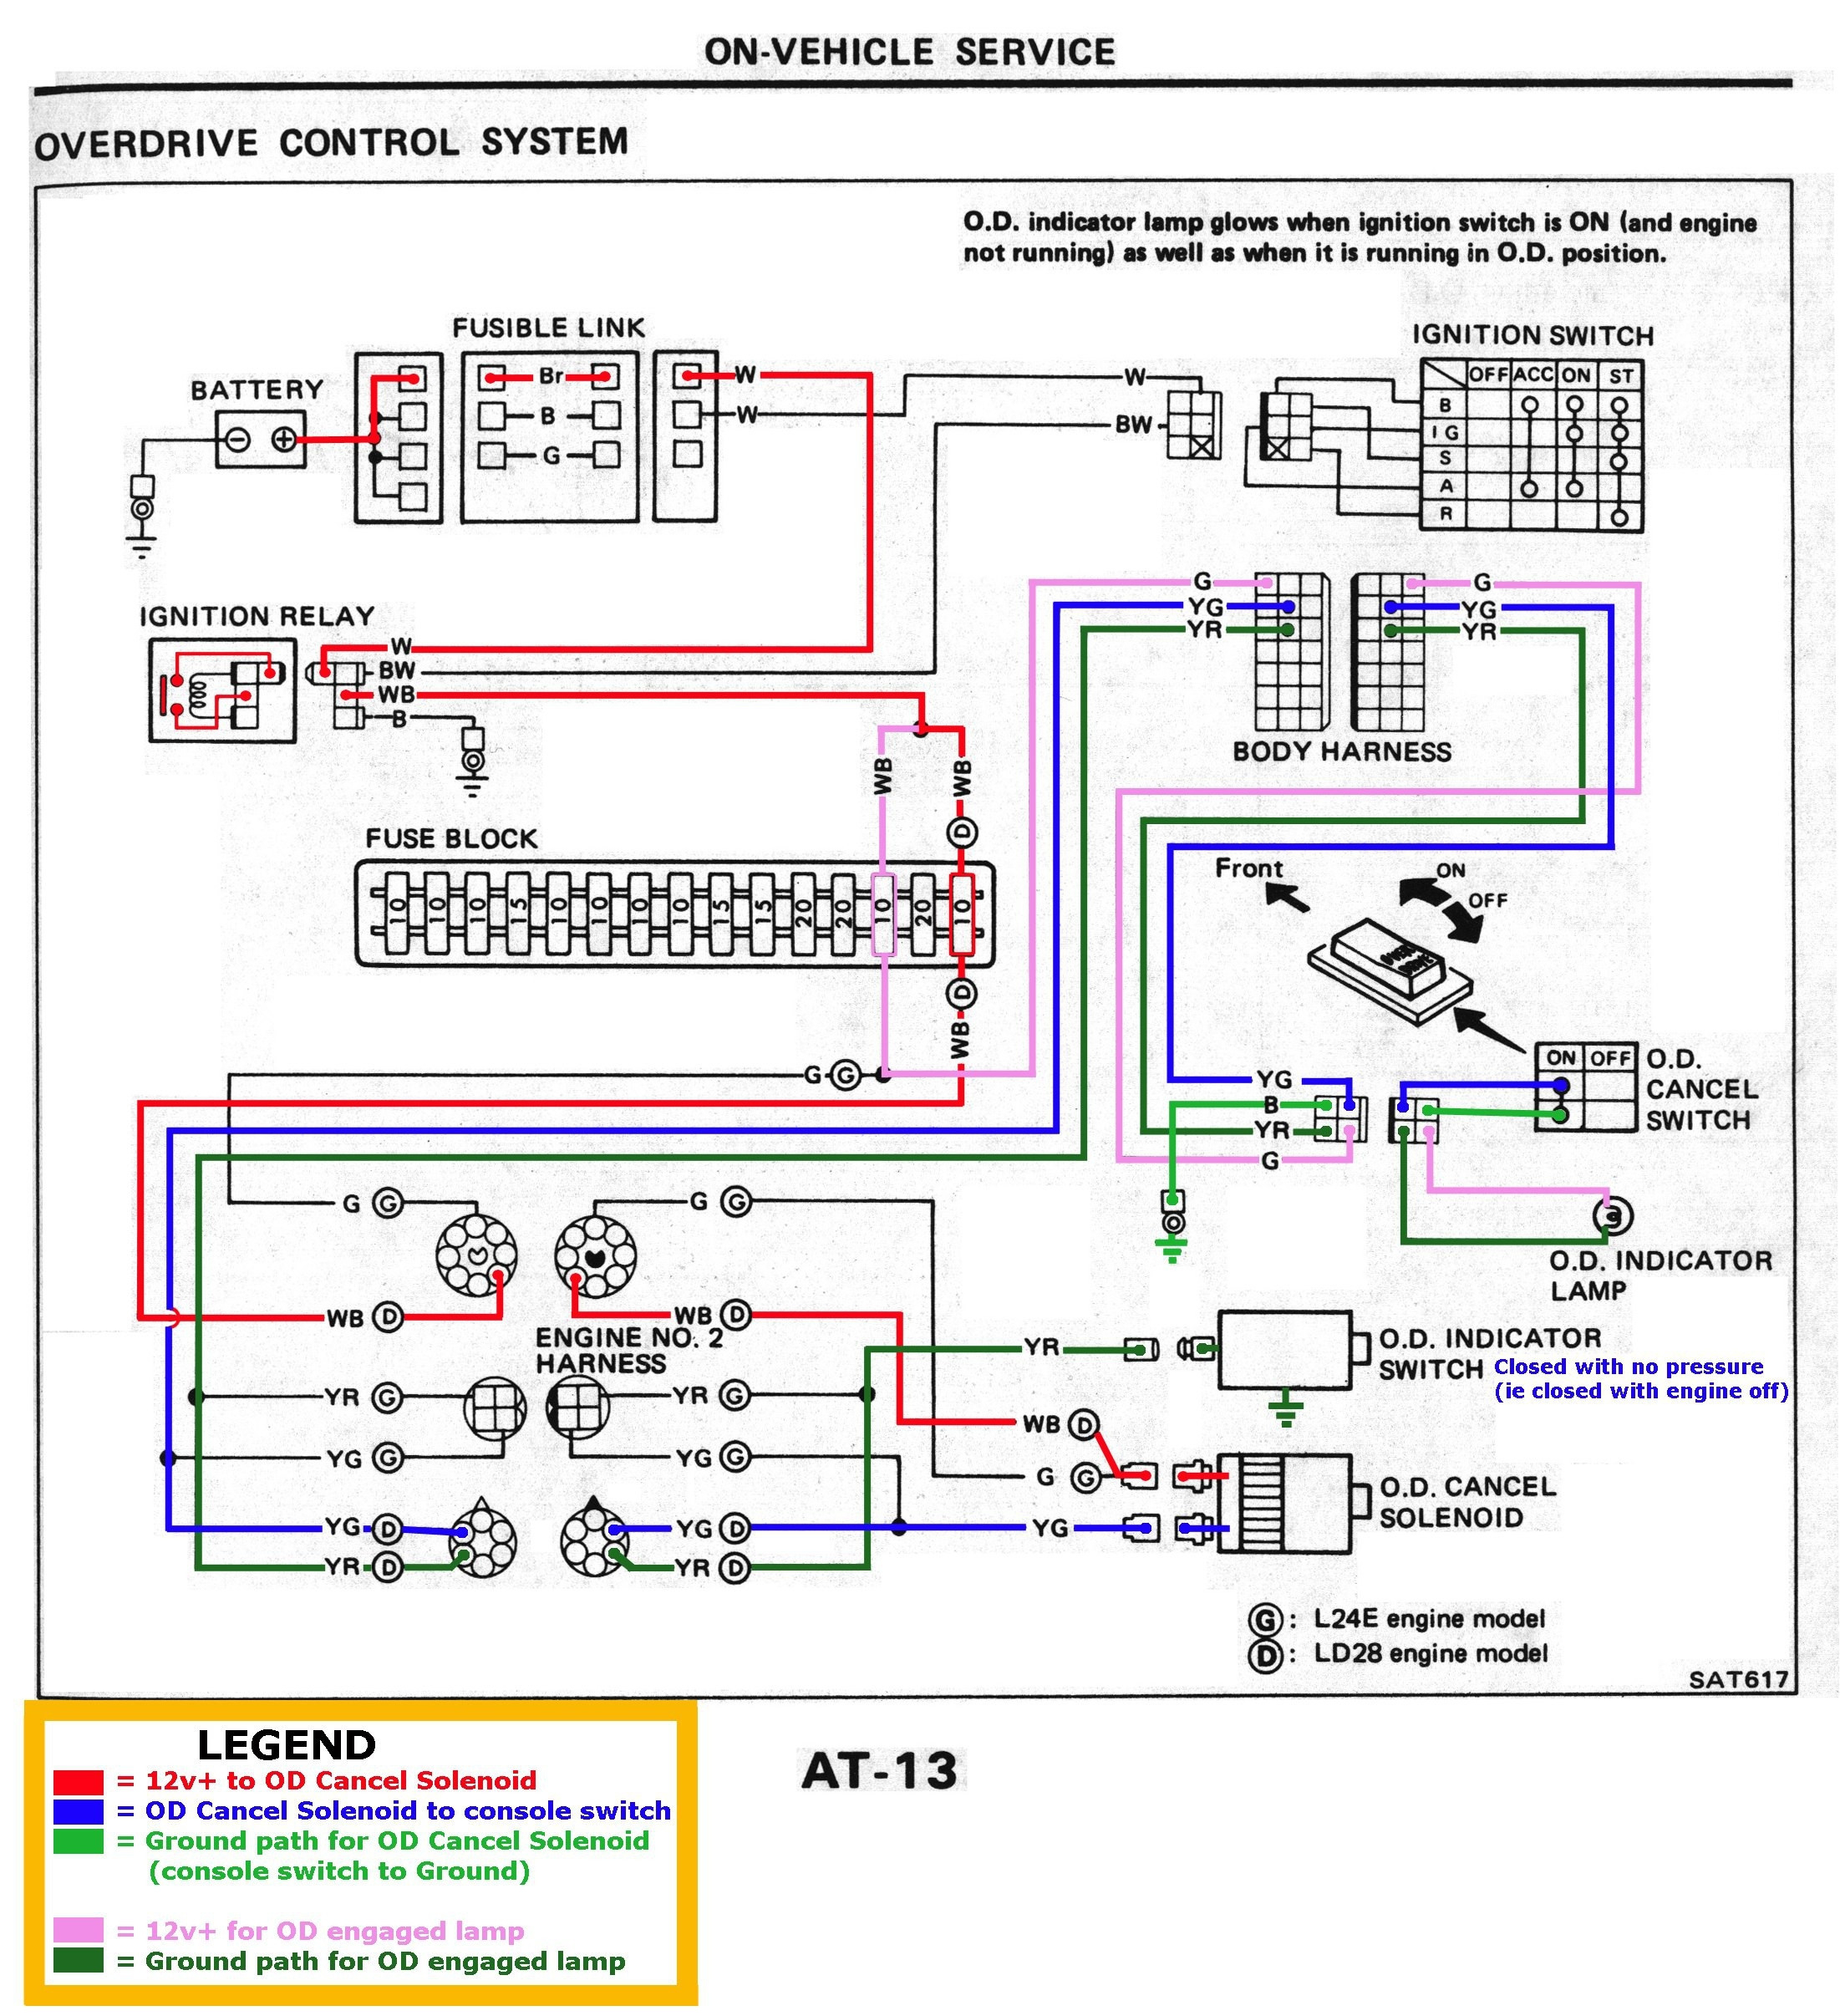 split system wiring diagram pioneer avh p3200dvd mitsubishi mini collection